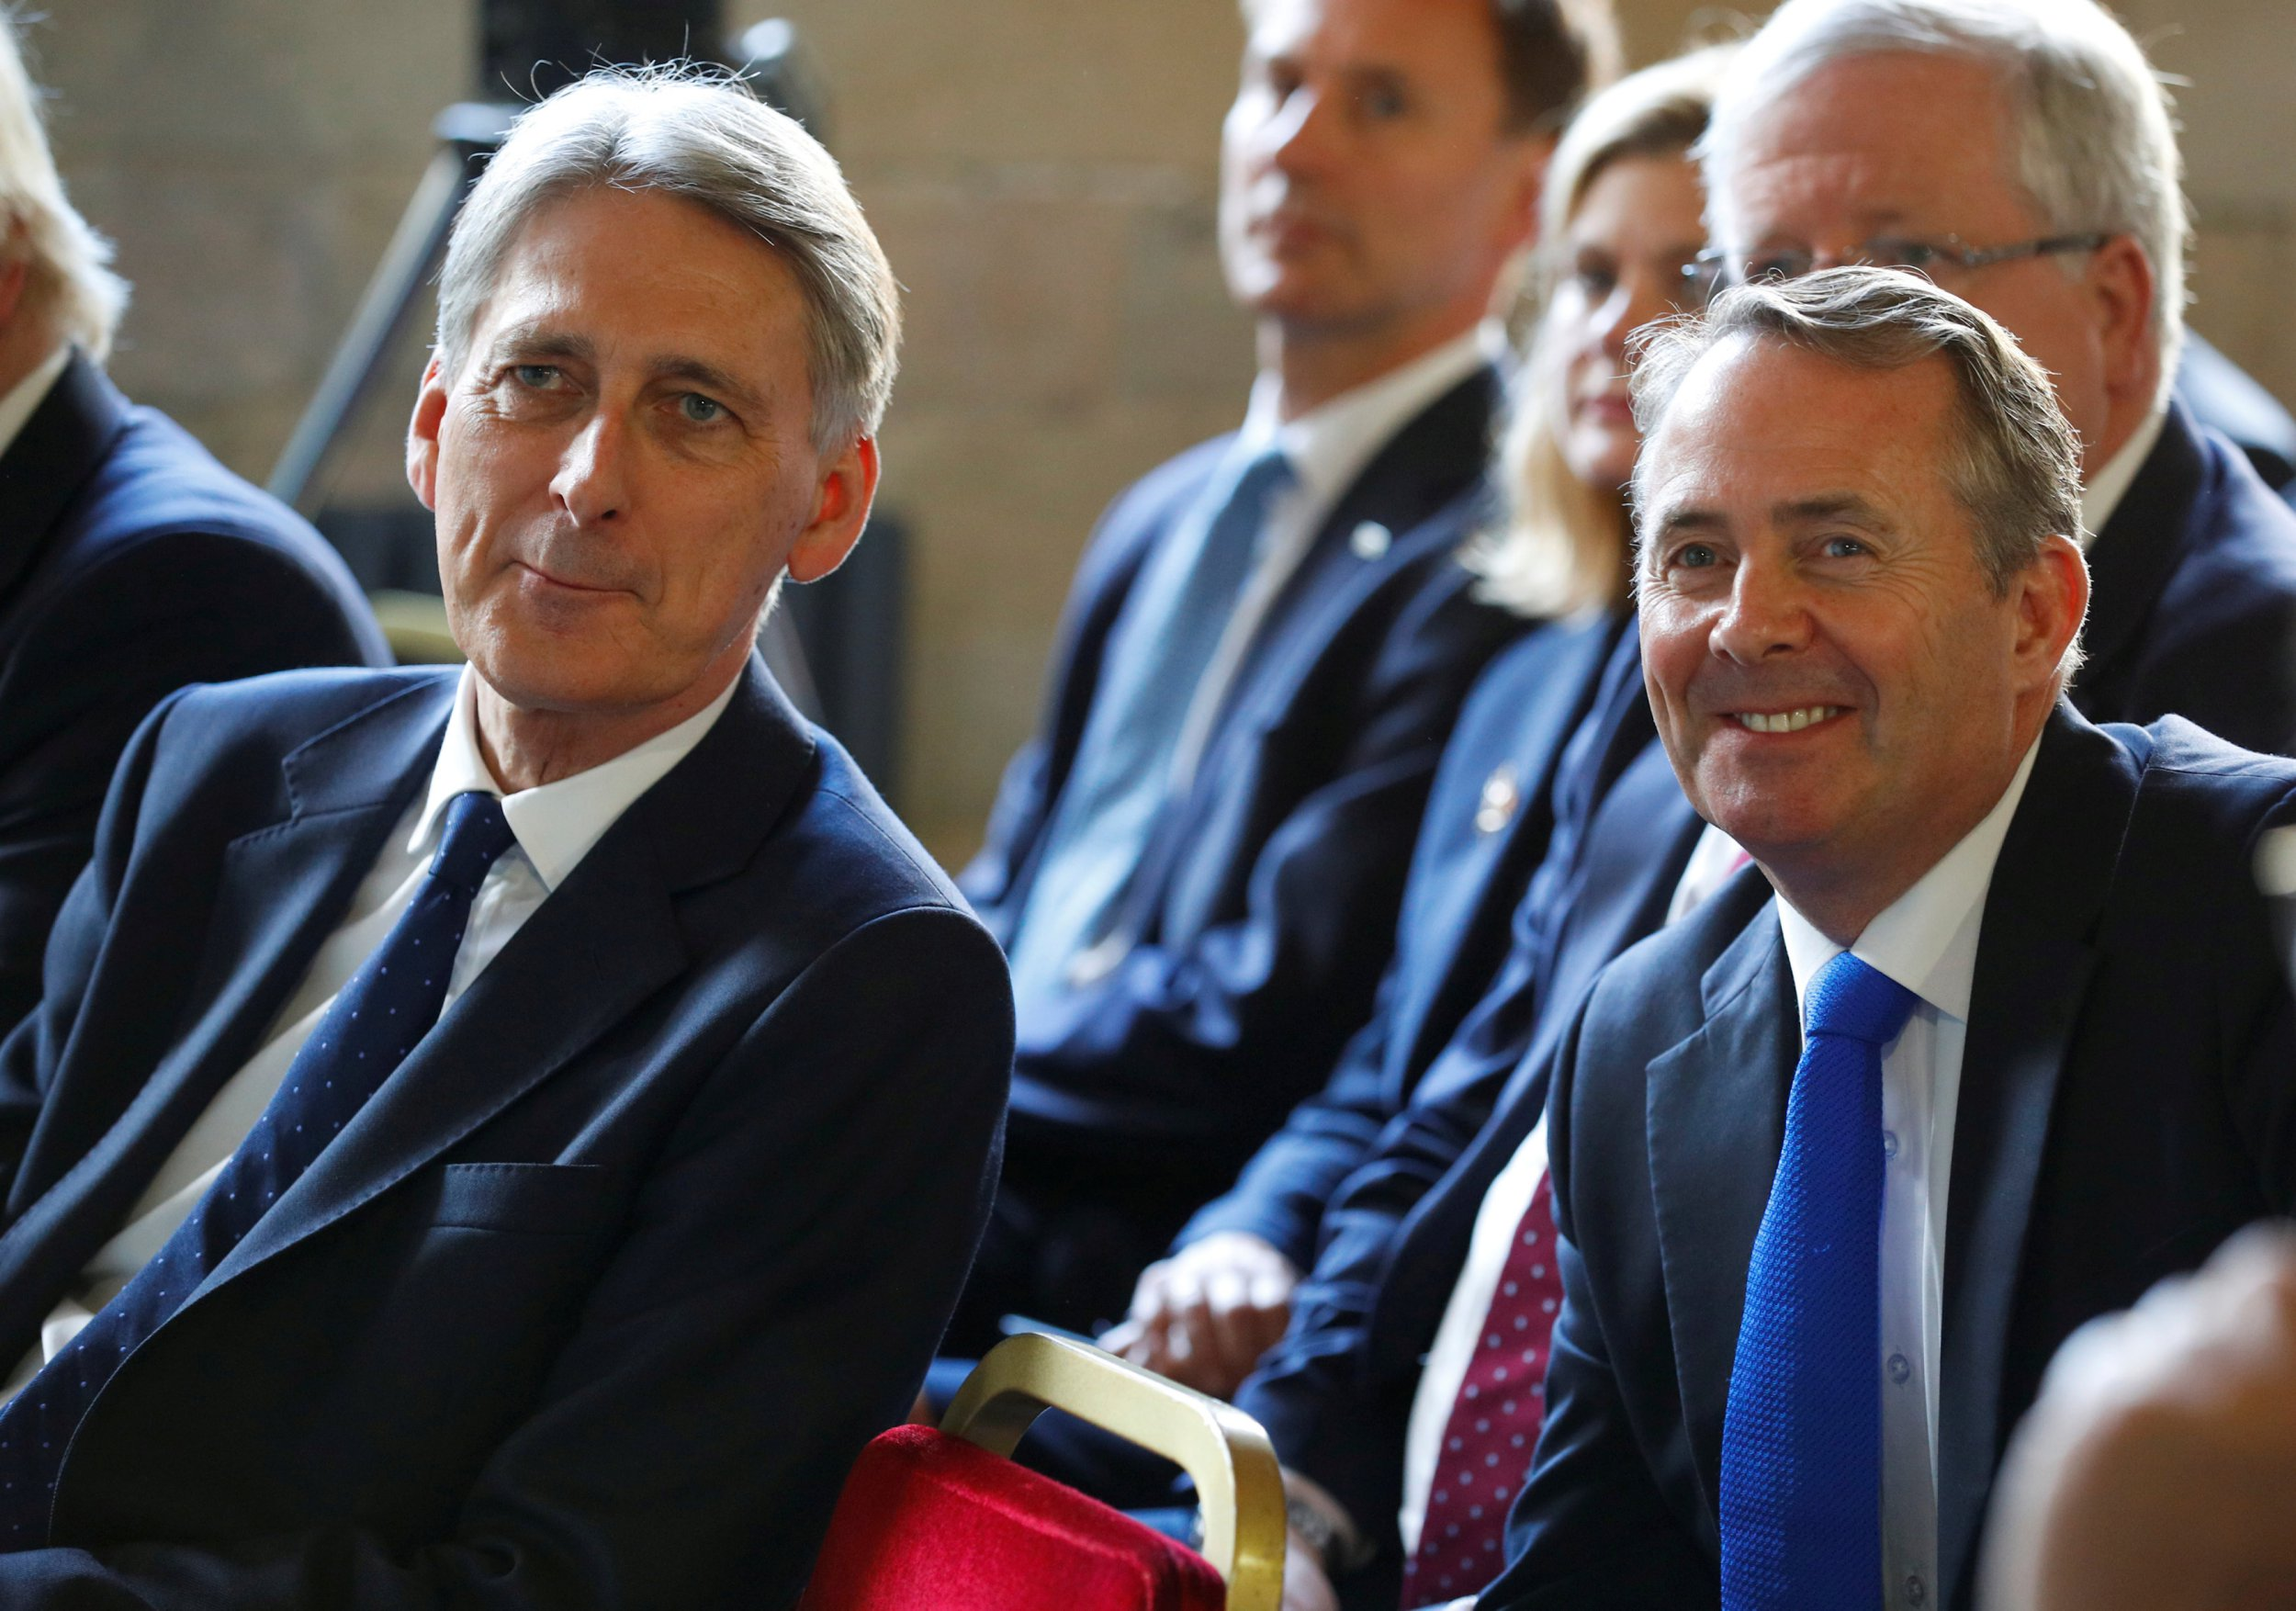 Philip Hammond and Liam Fox pour cold water on hopes for a soft Brexit